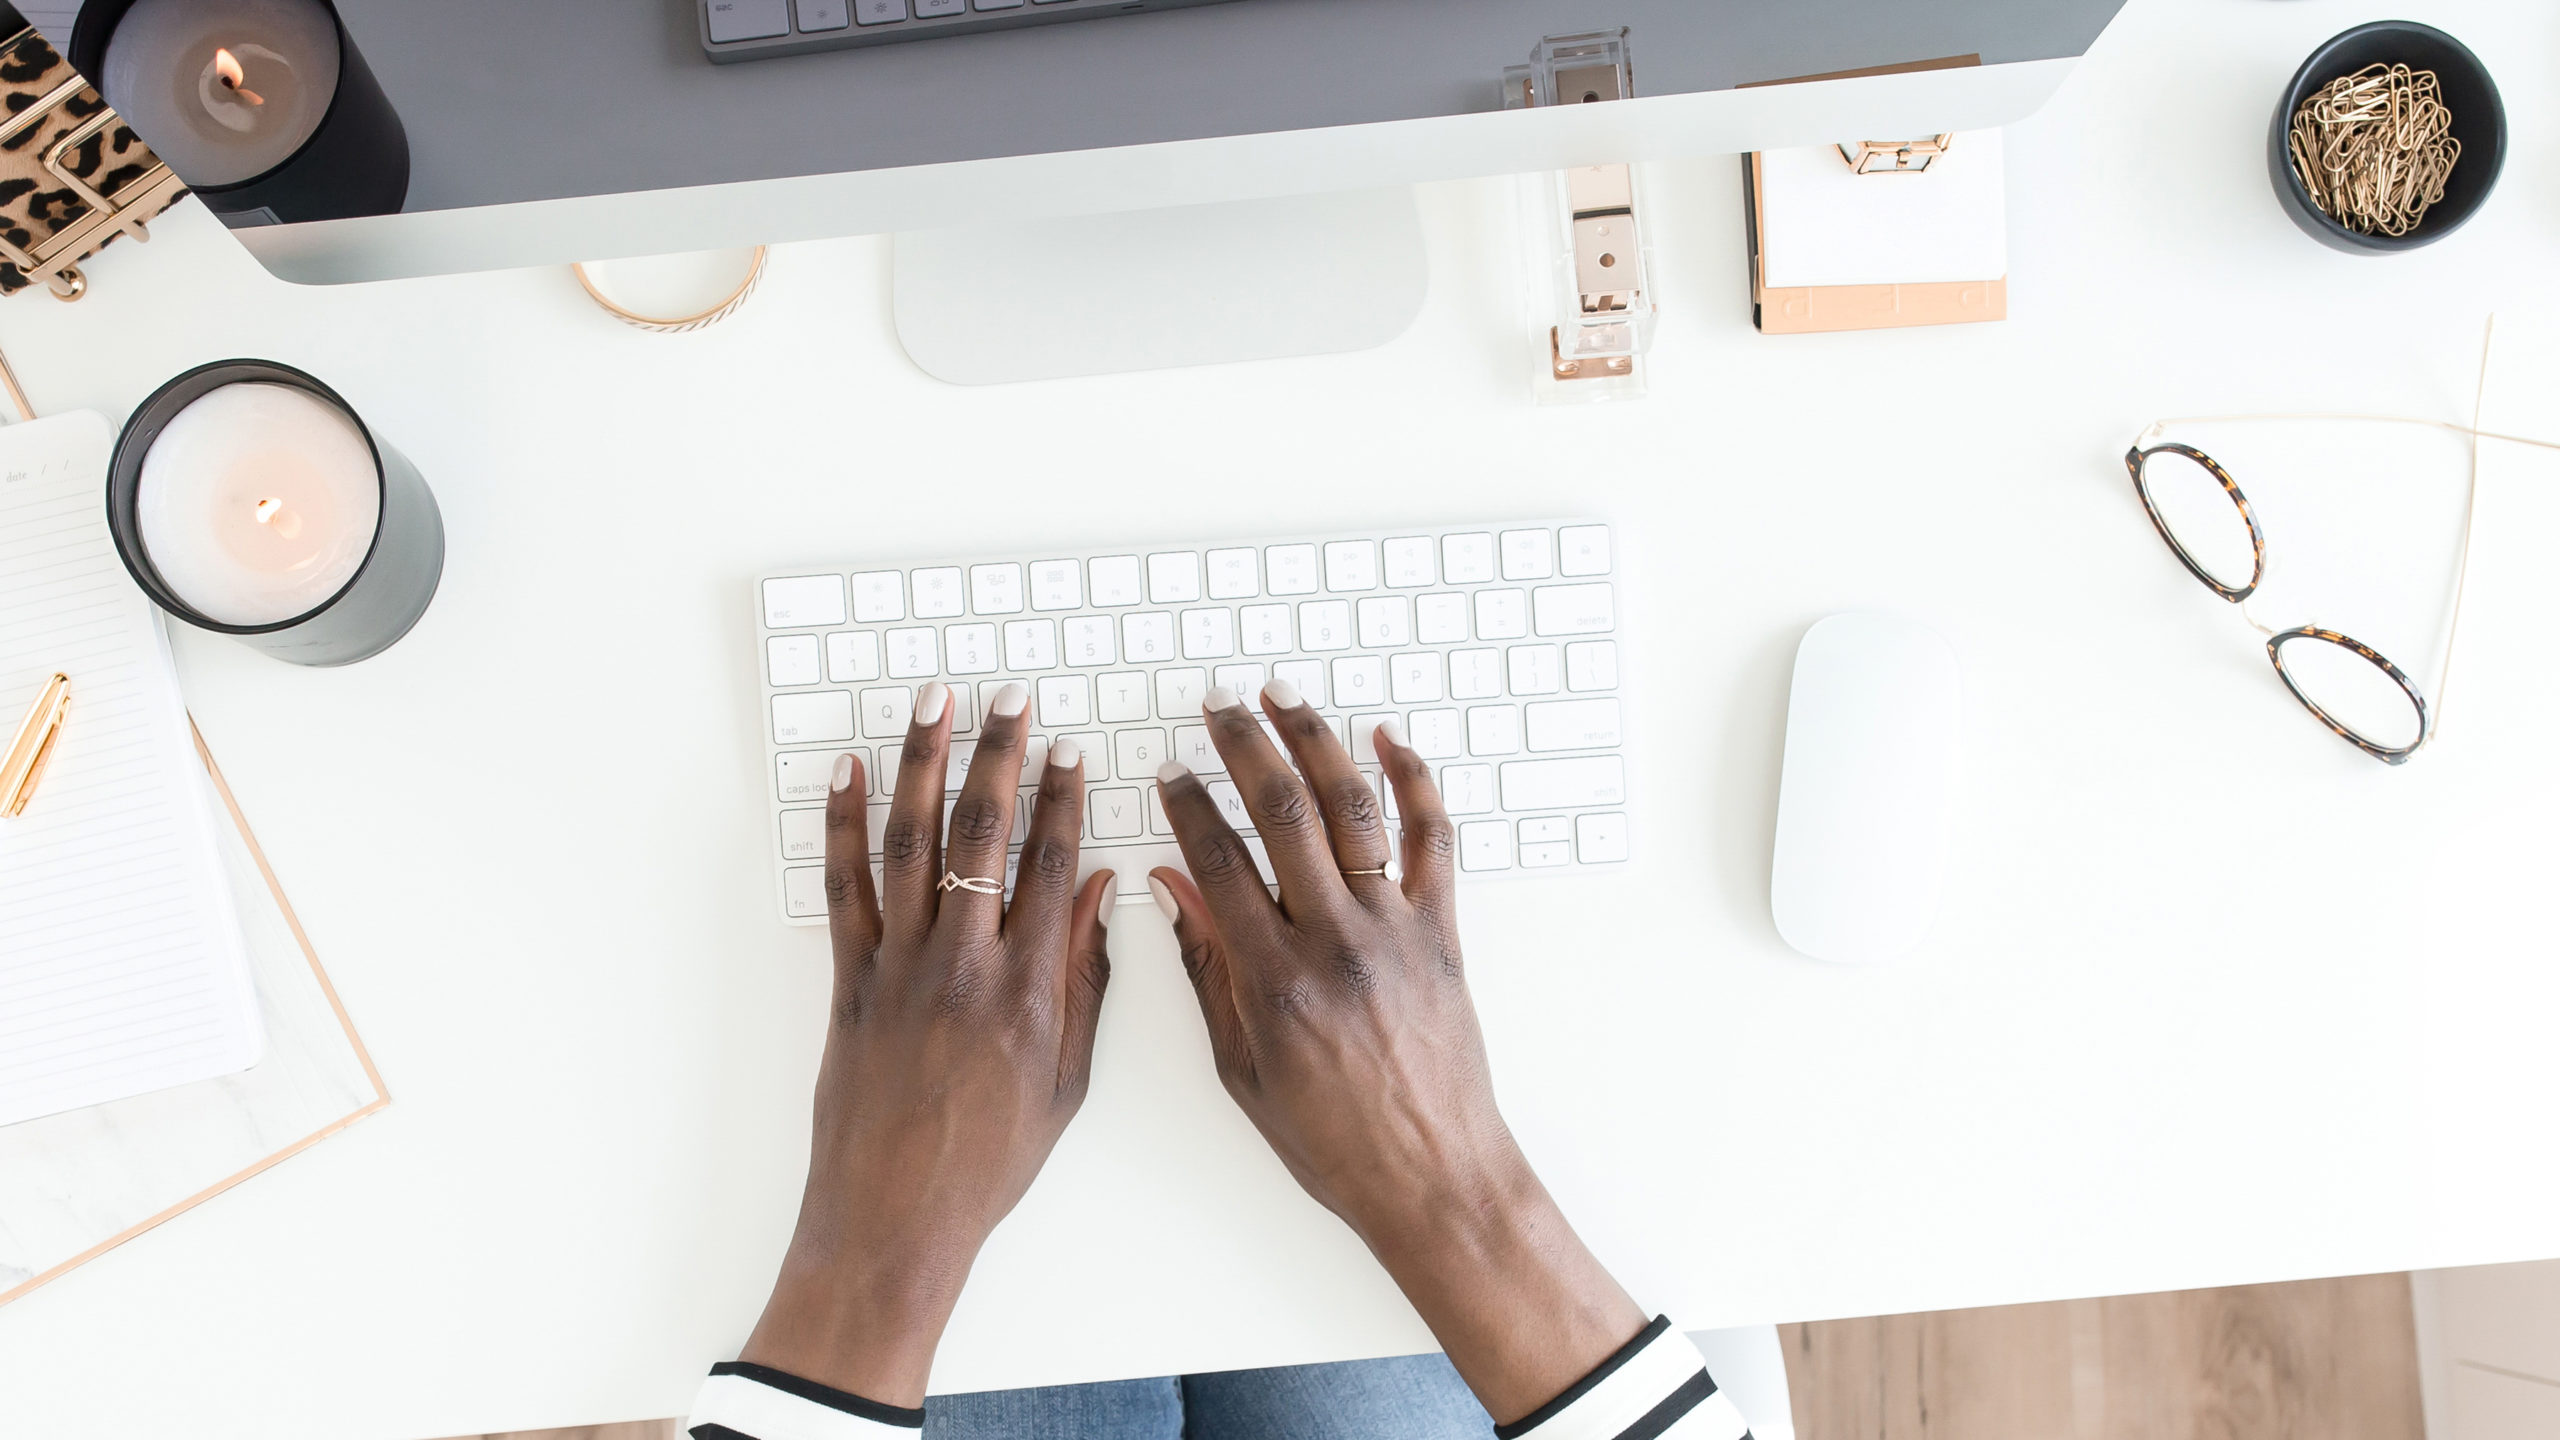 hands typing at computer | One mom's ode to groupon during the holidays